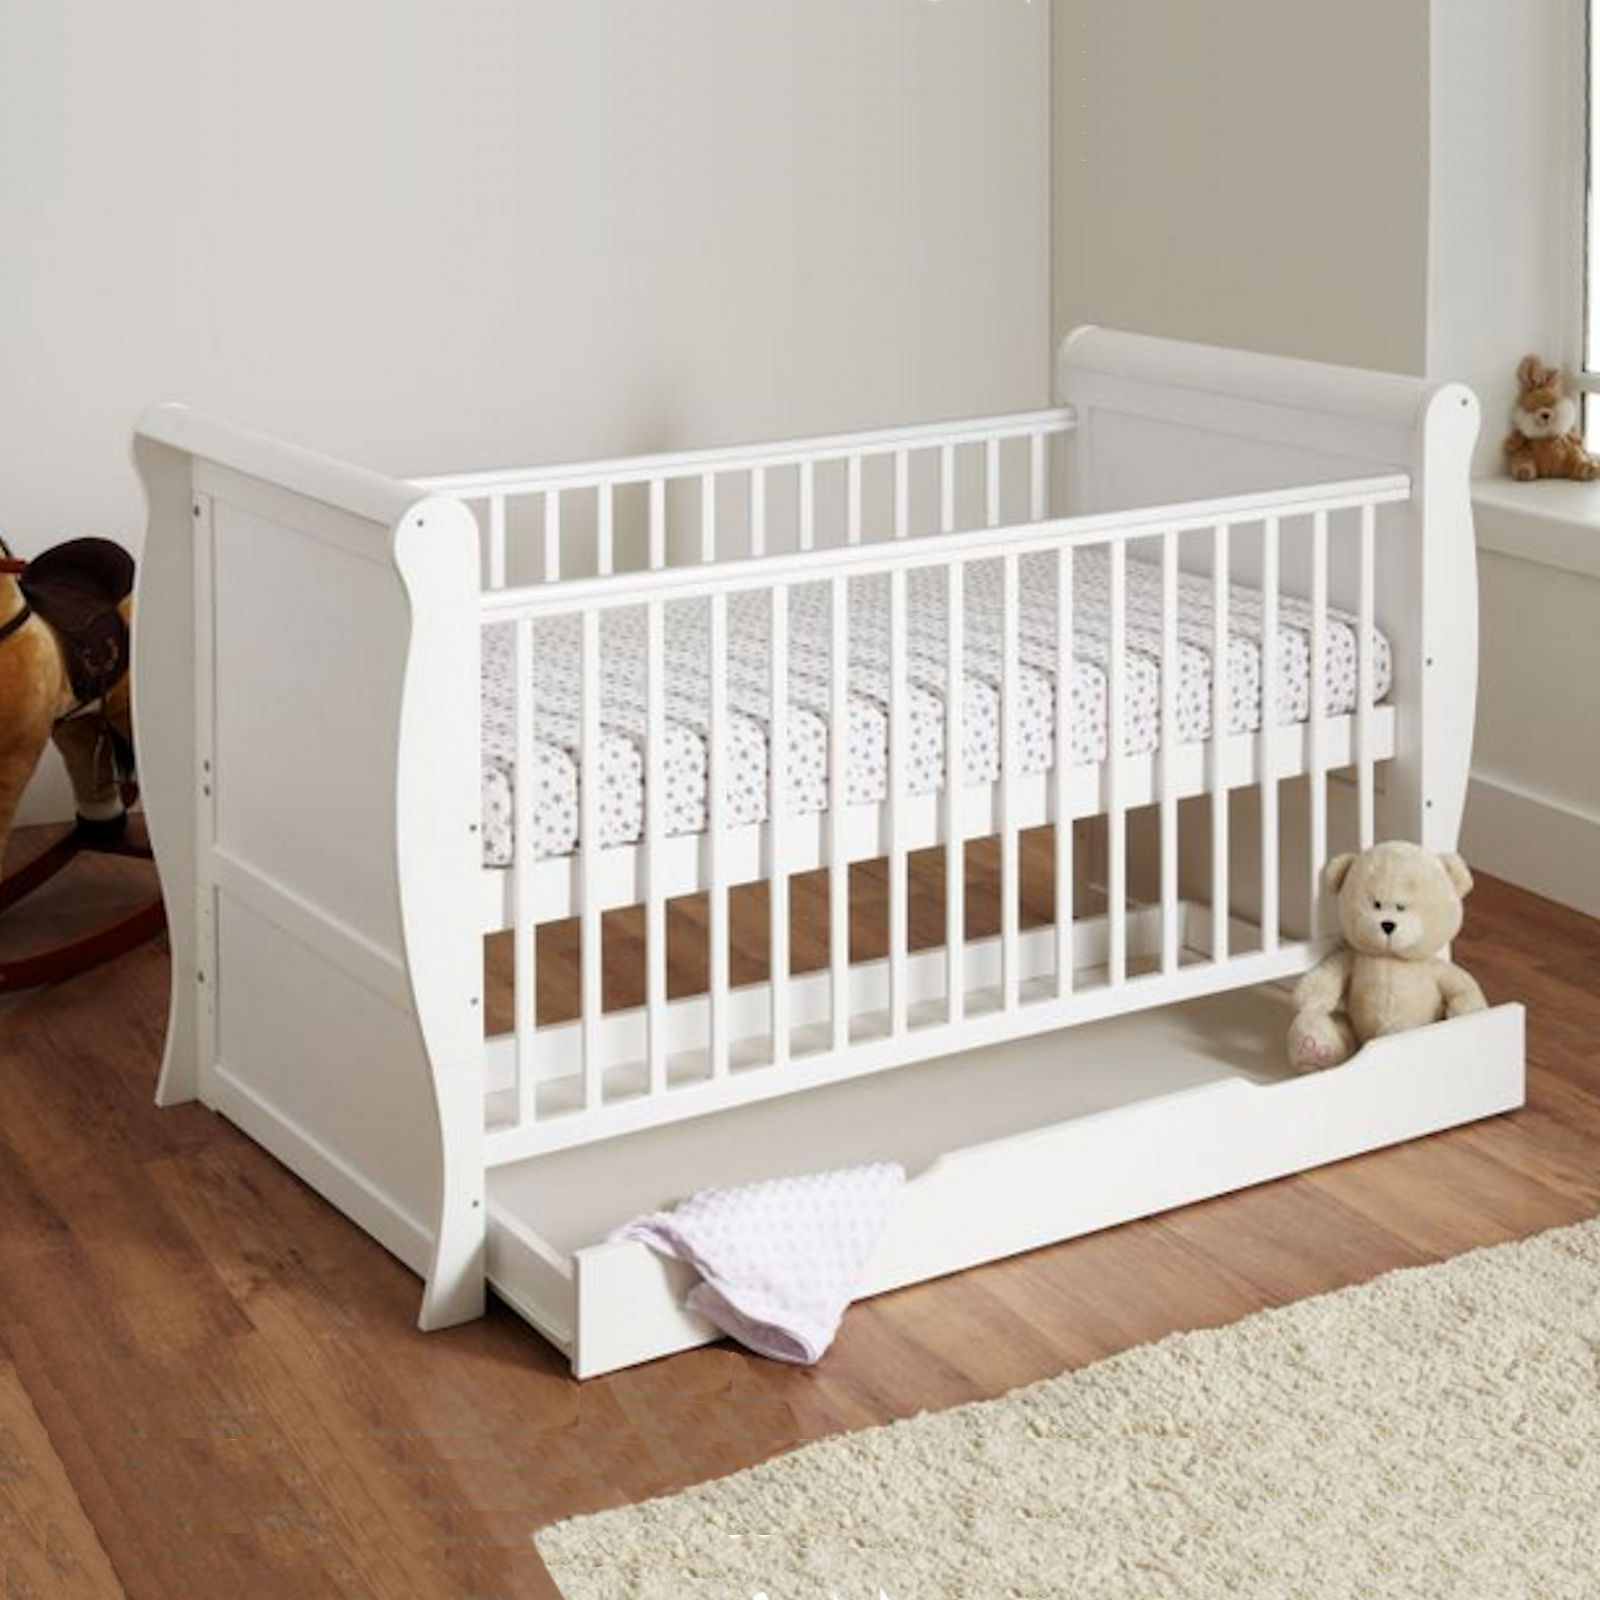 4Baby 3 in 1 Sleigh Cot Bed With Deluxe Foam Mattress ...